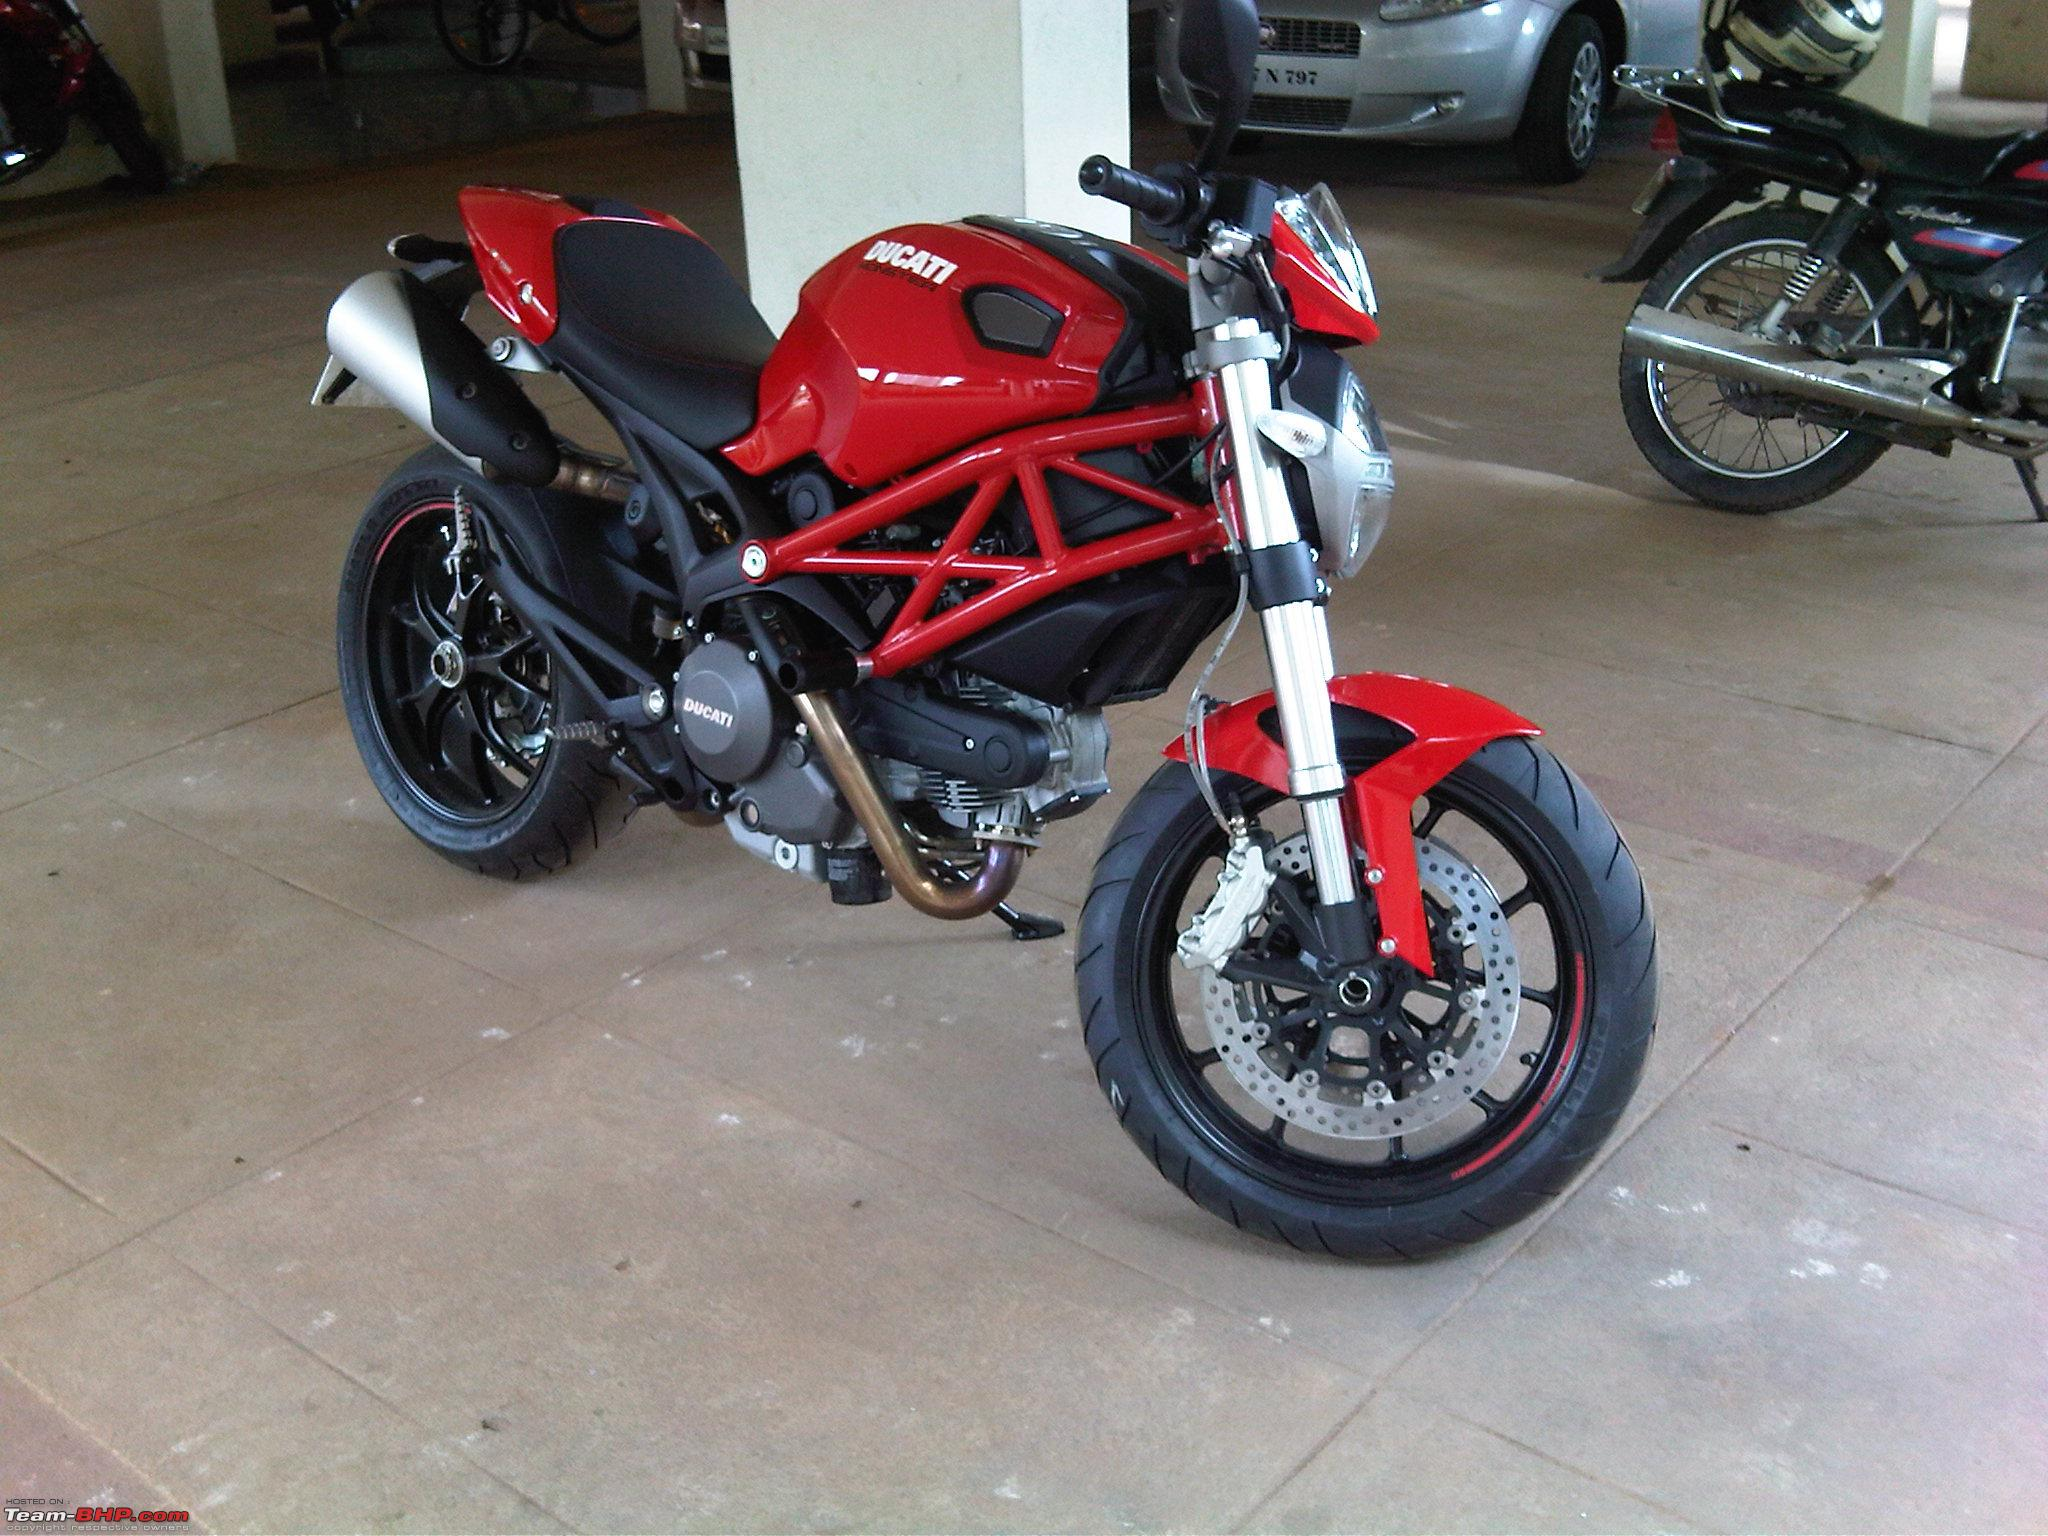 Ducati Monster 796 Ownership Team Bhp